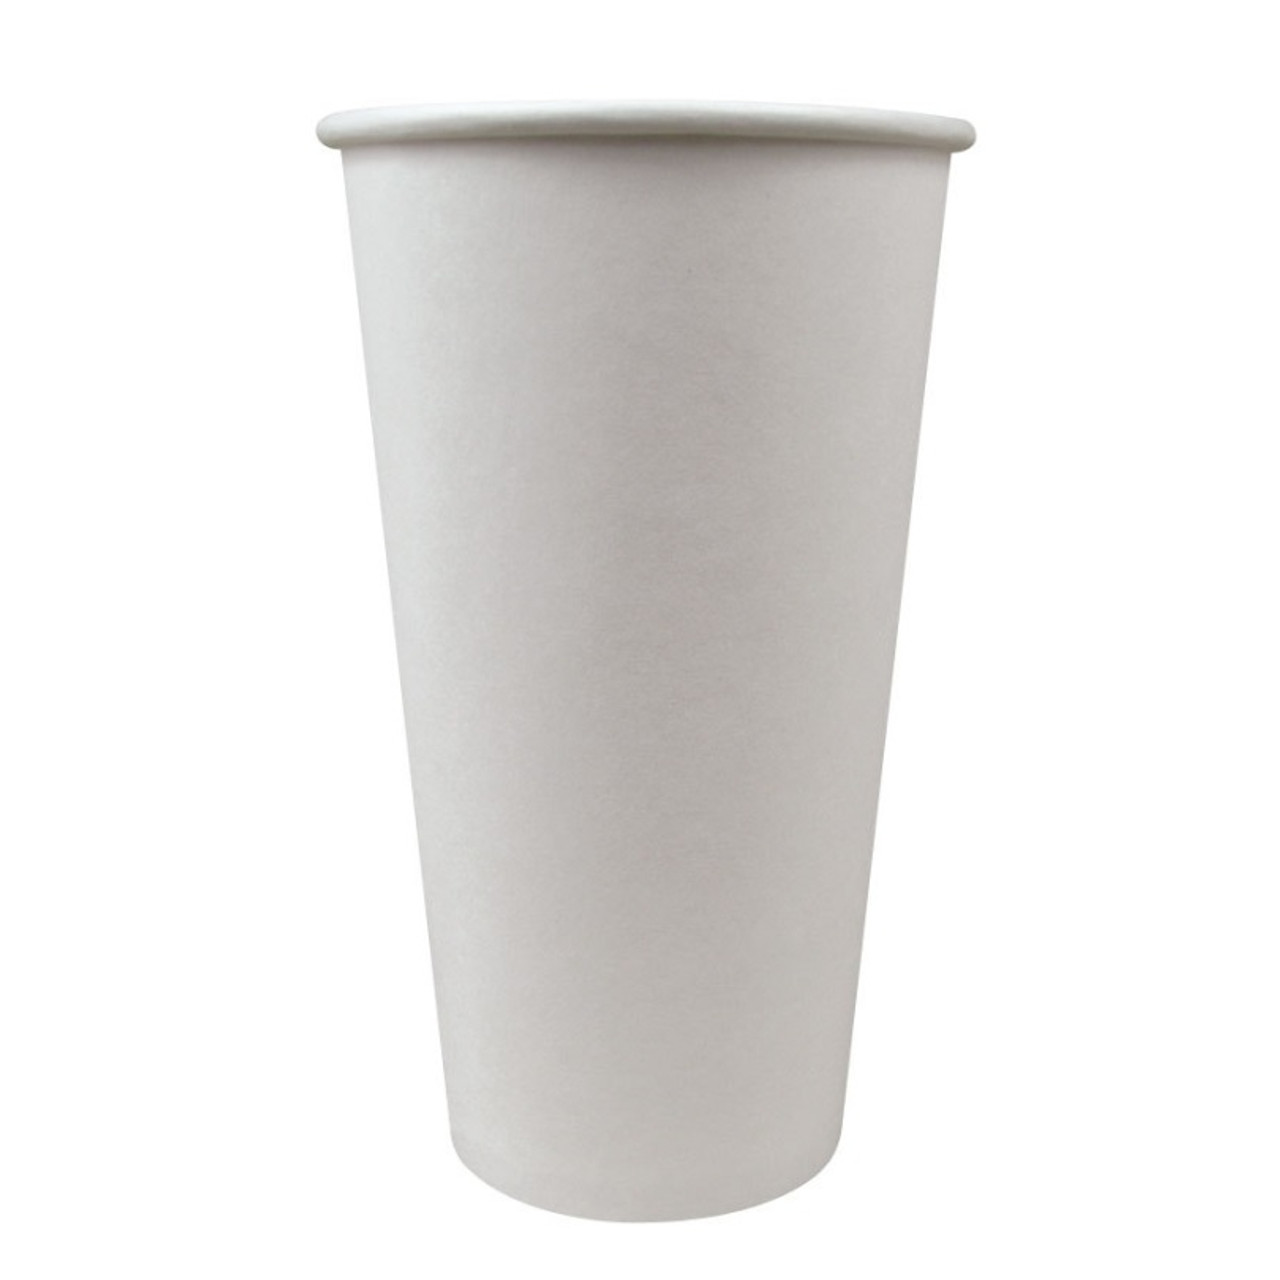 20oz white paper hot cup